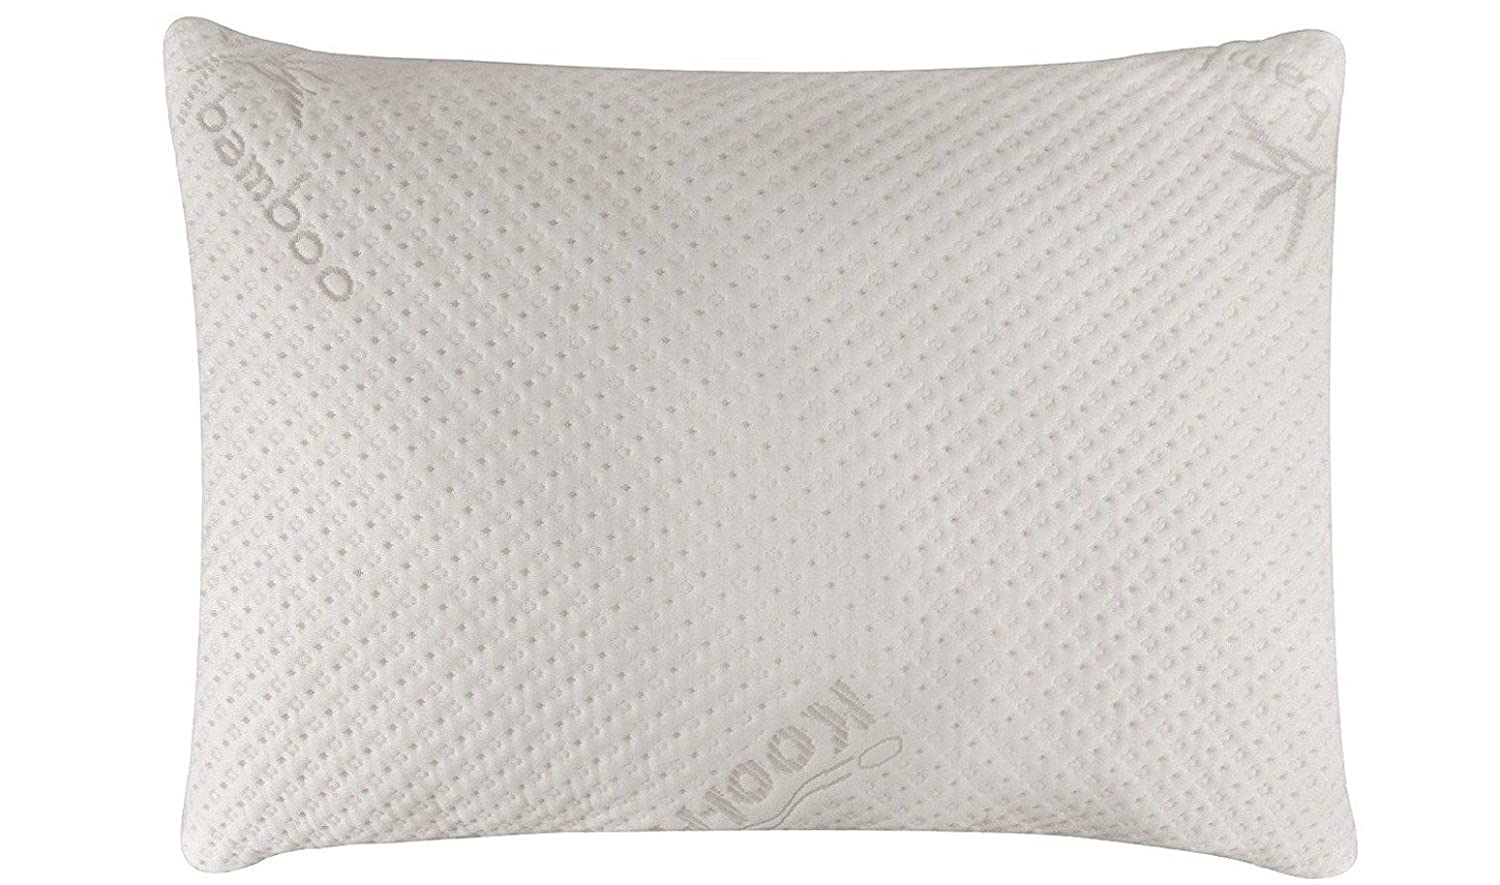 Snuggle-pedic bamboo memory foam pillow